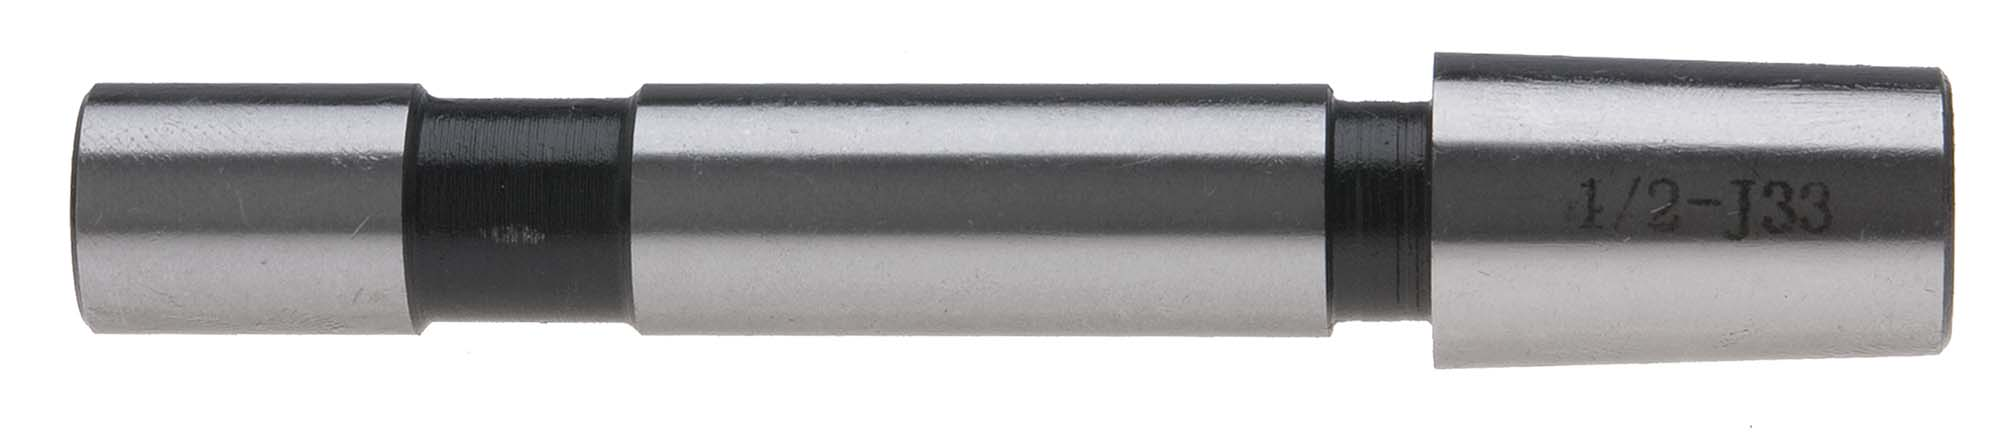 "3/4"" Straight Shank-3 Jacobs Taper Drill Chuck Arbor"